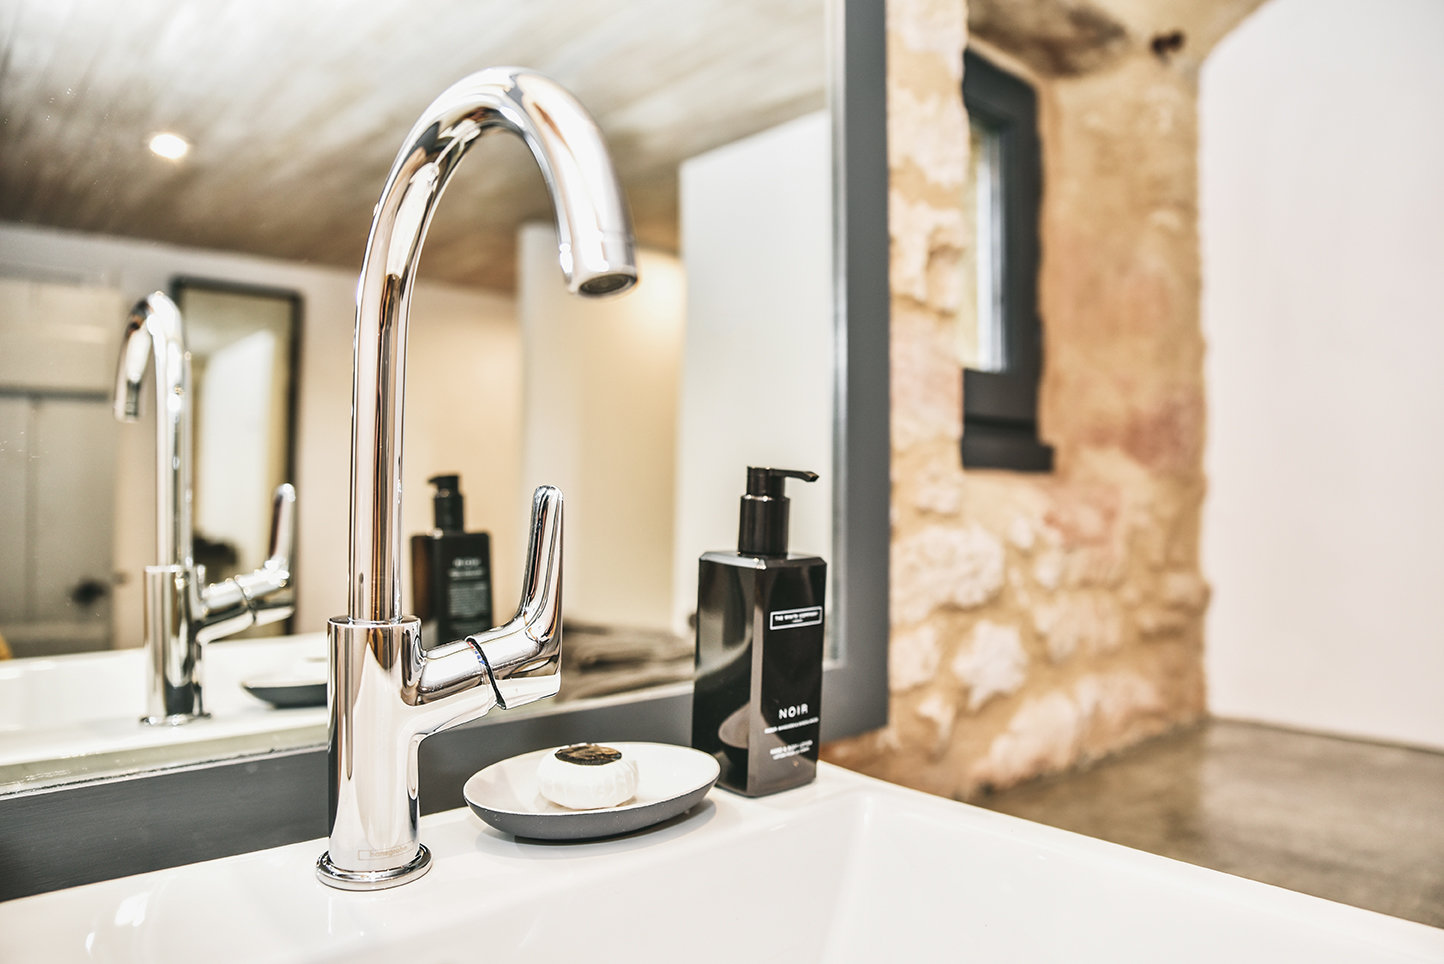 Glistening chrome taps on a white sink in a bathroom in the 4-star holiday cottage in the Dordogne, Le Mazet